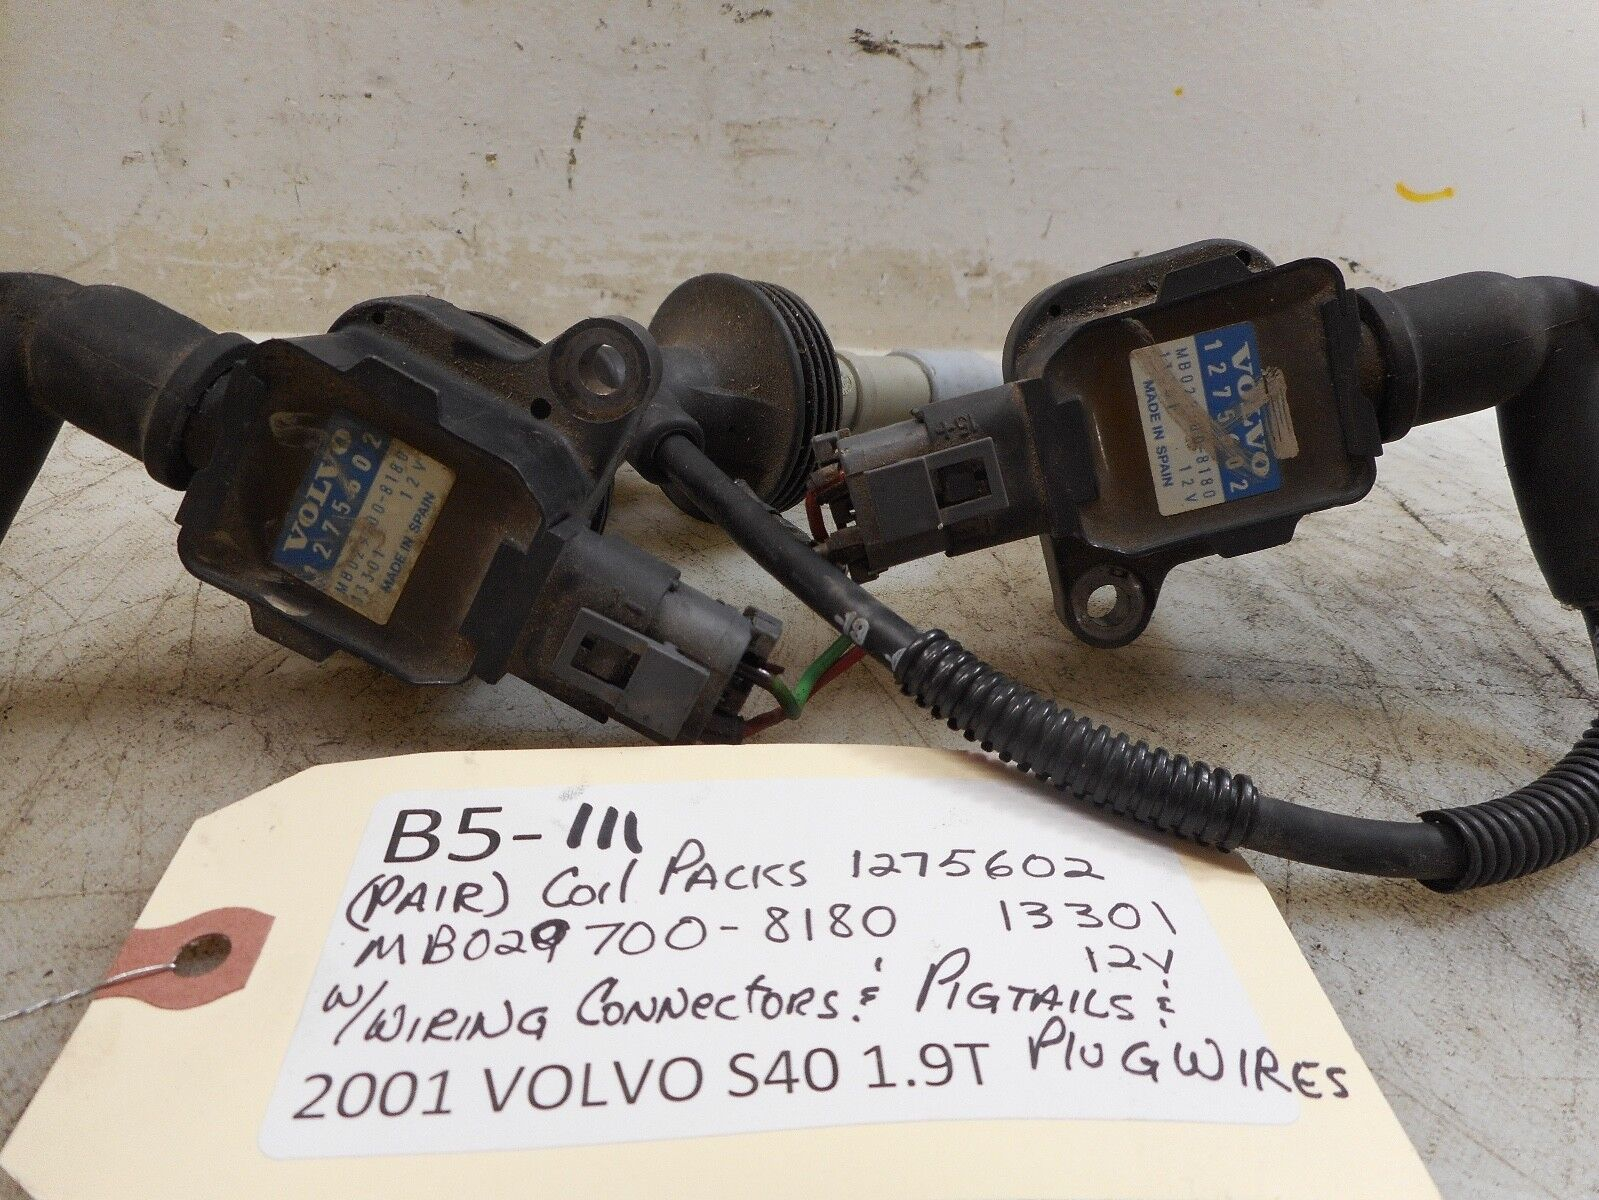 00 04 Volvo S40 V40 Ignition Coil 19 Litre With Ht Wires Ebay Wiring A Plug In Spain Norton Secured Powered By Verisign